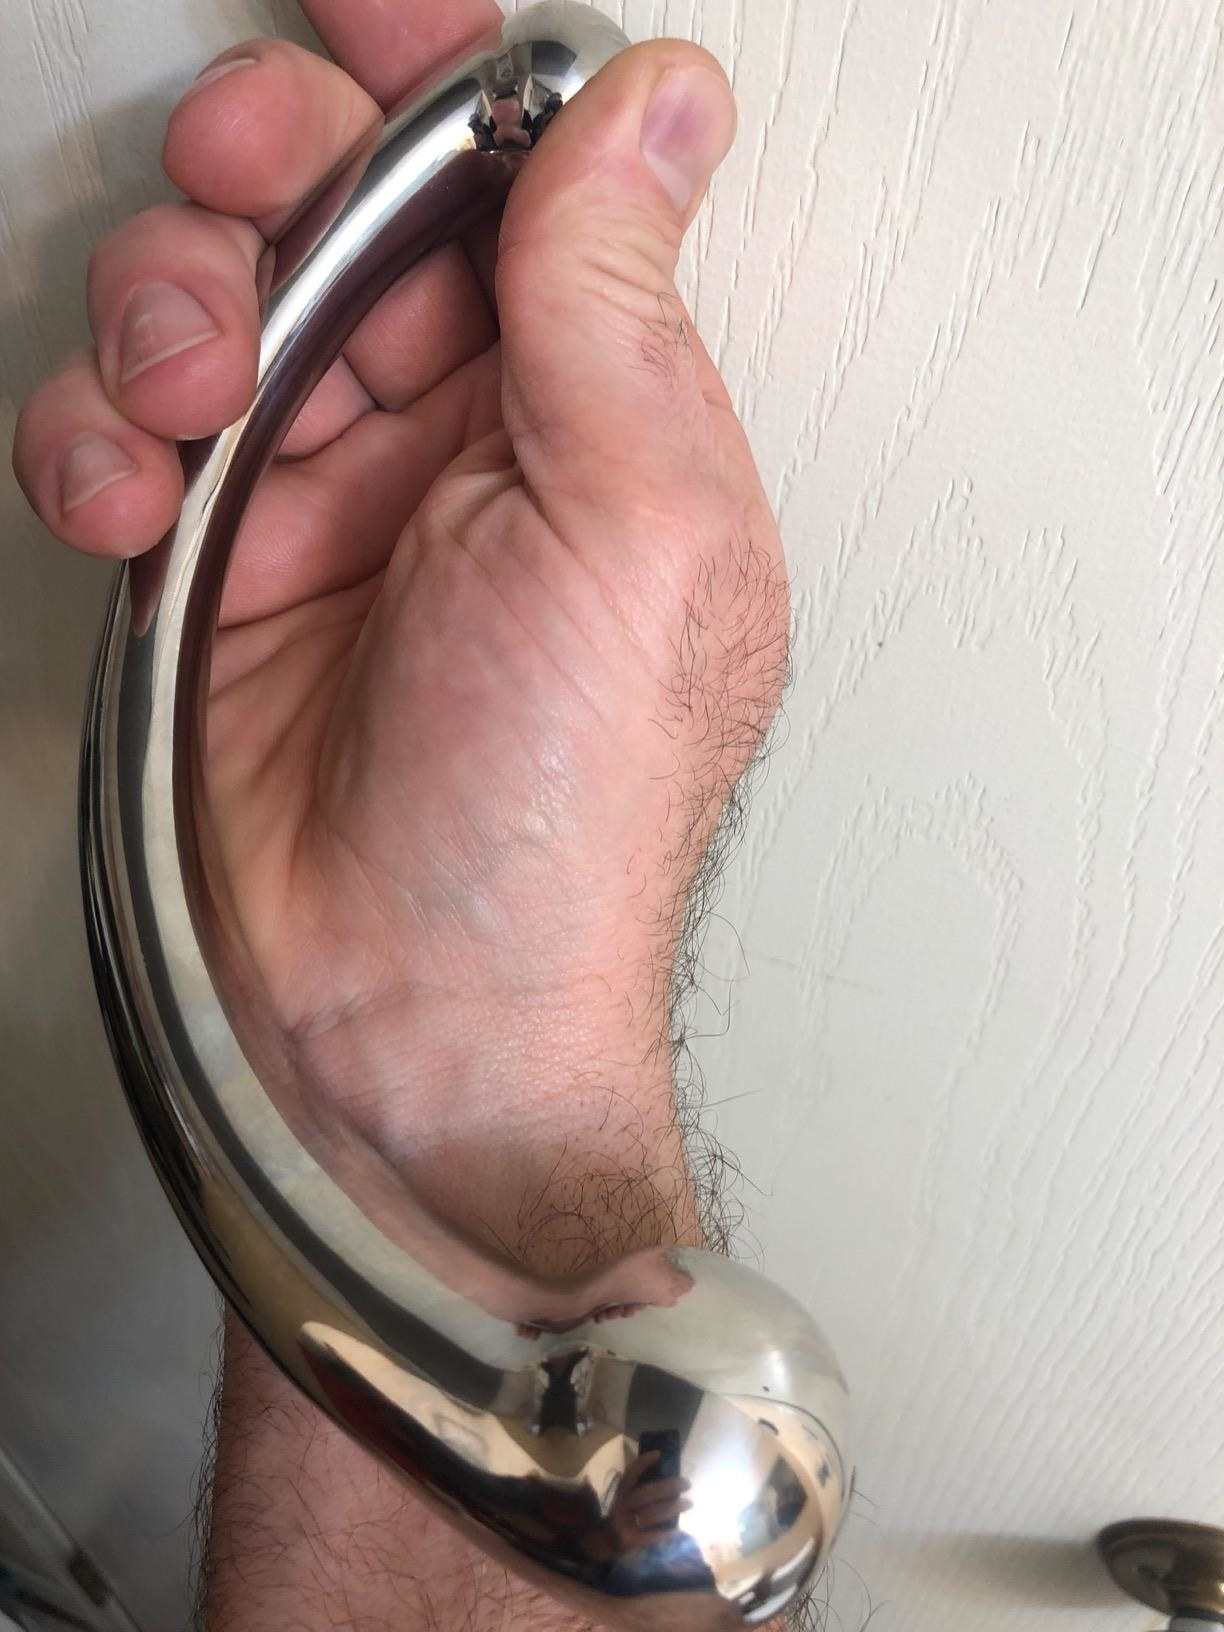 hand holding the curved wand with a large bulb on one end and a small bulb on the other